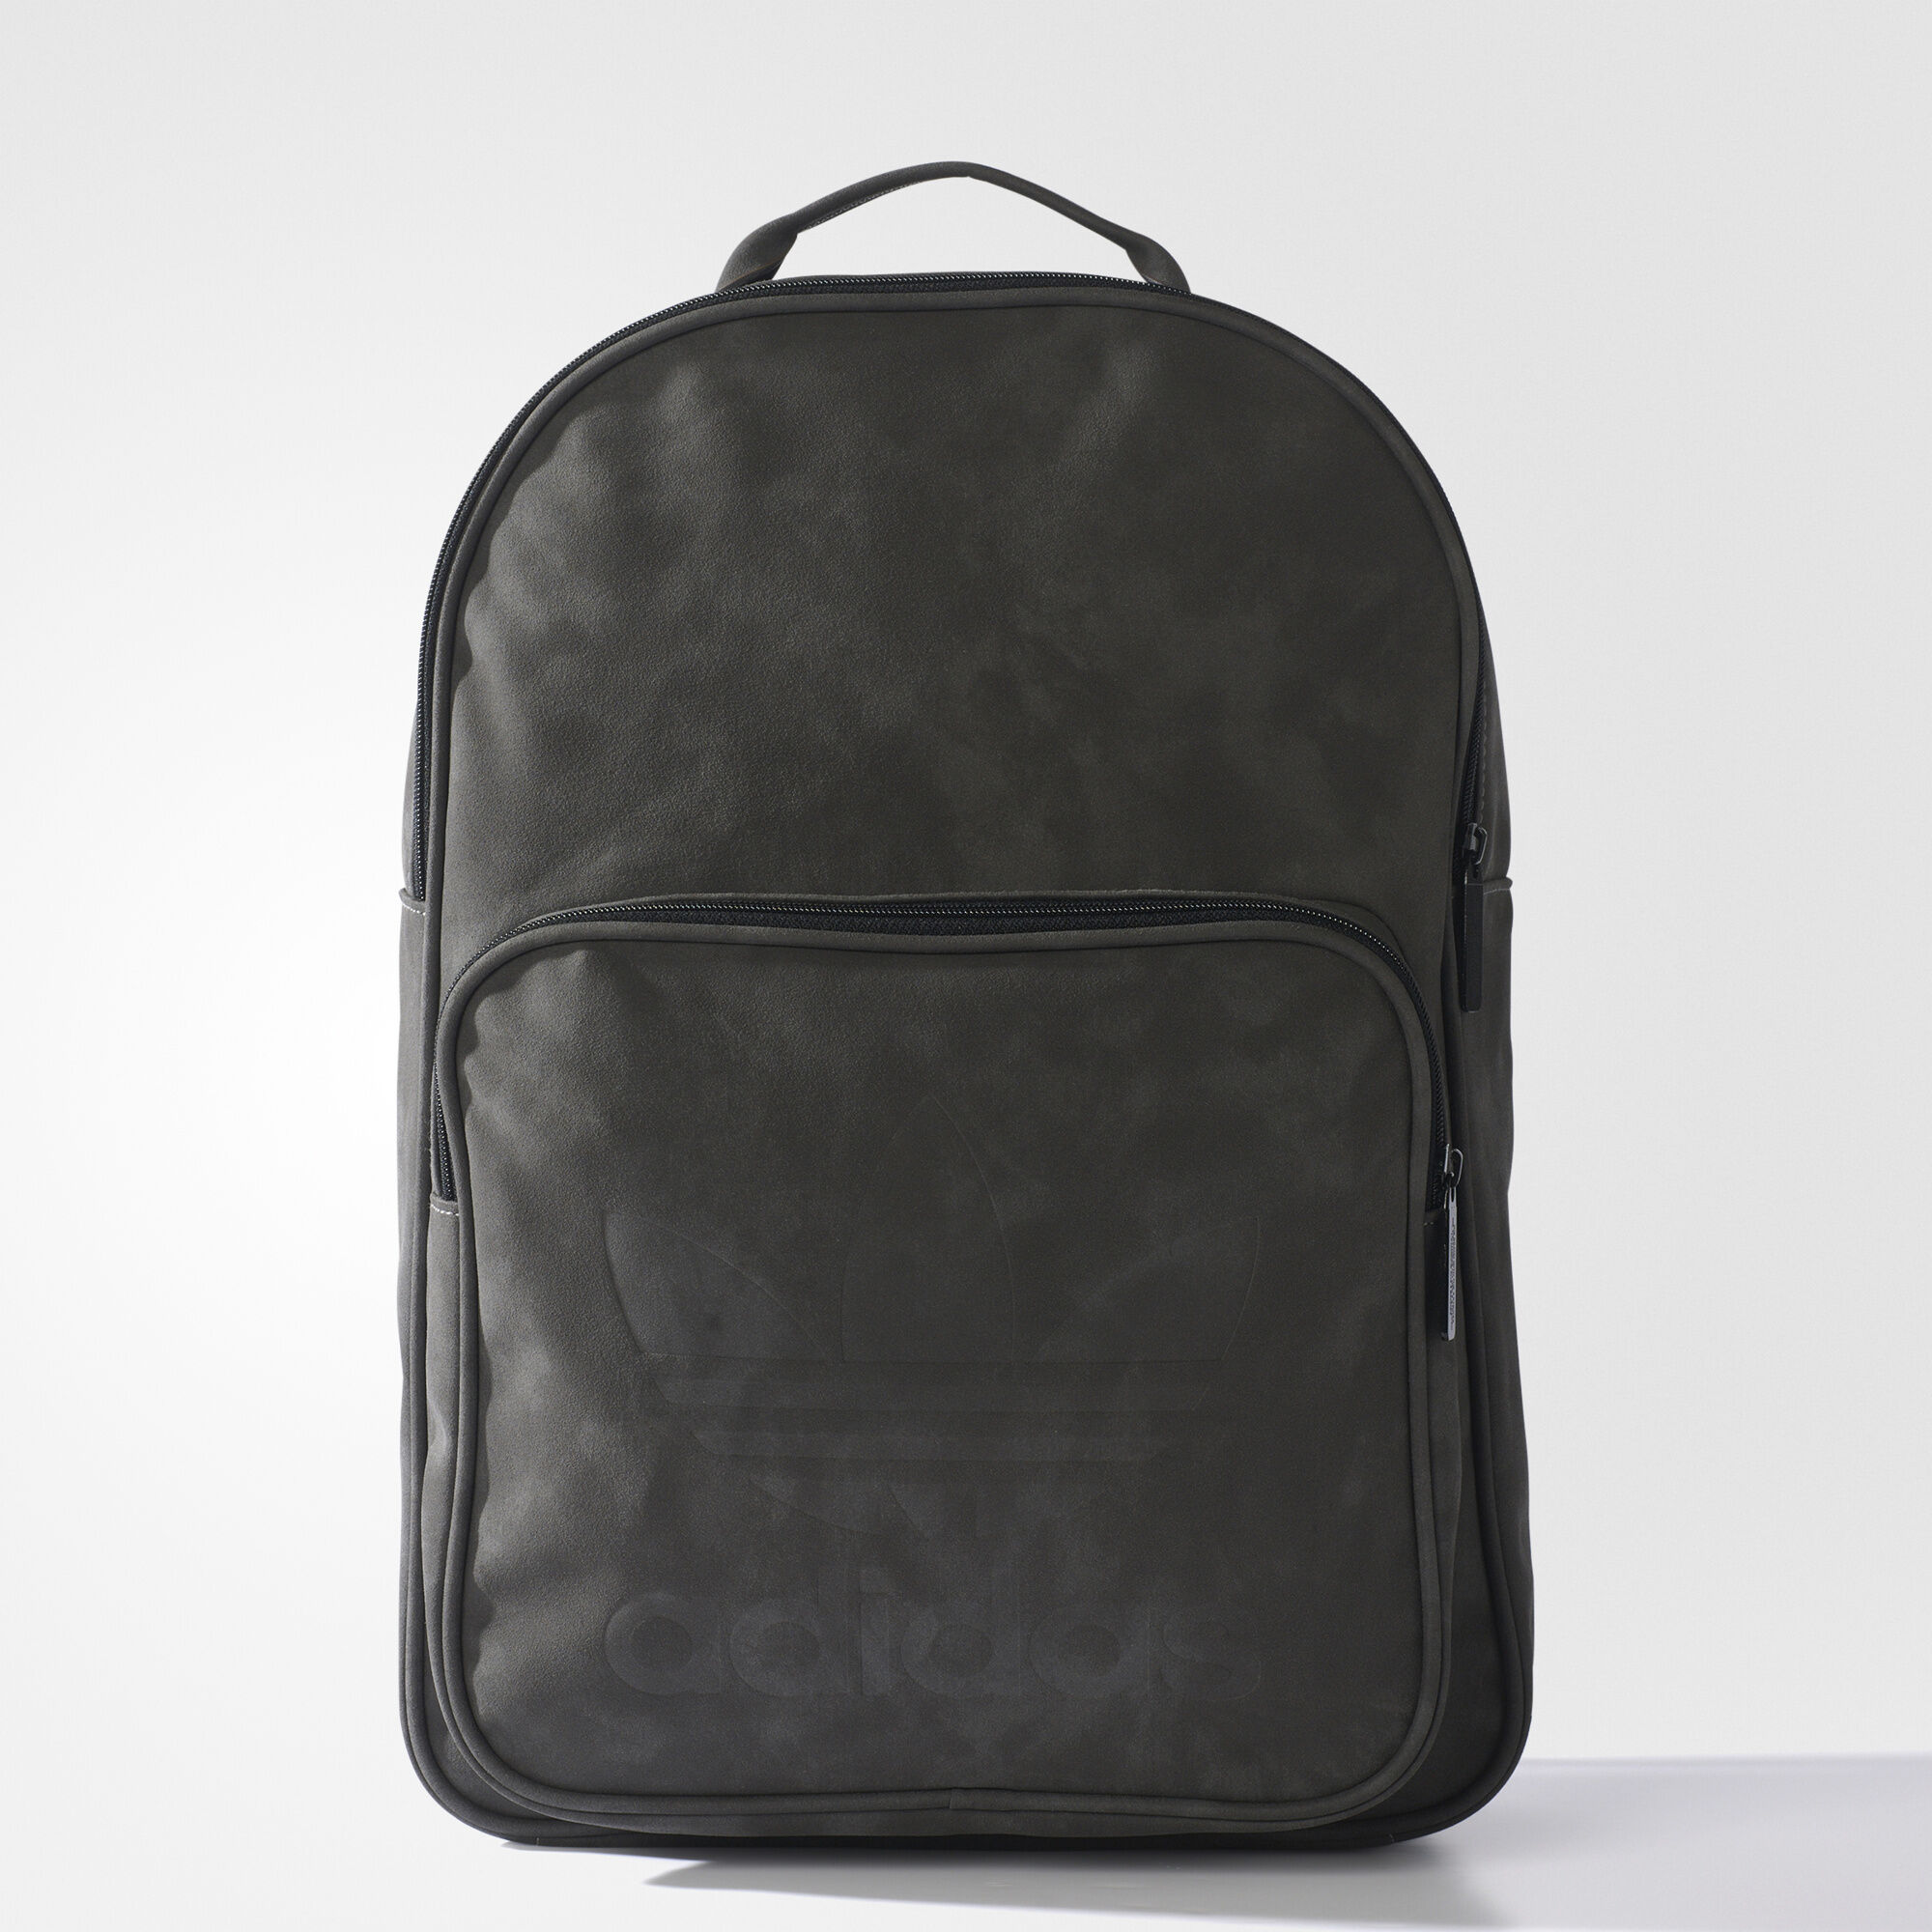 853d772de6 adidas leather backpack on sale   OFF65% Discounted